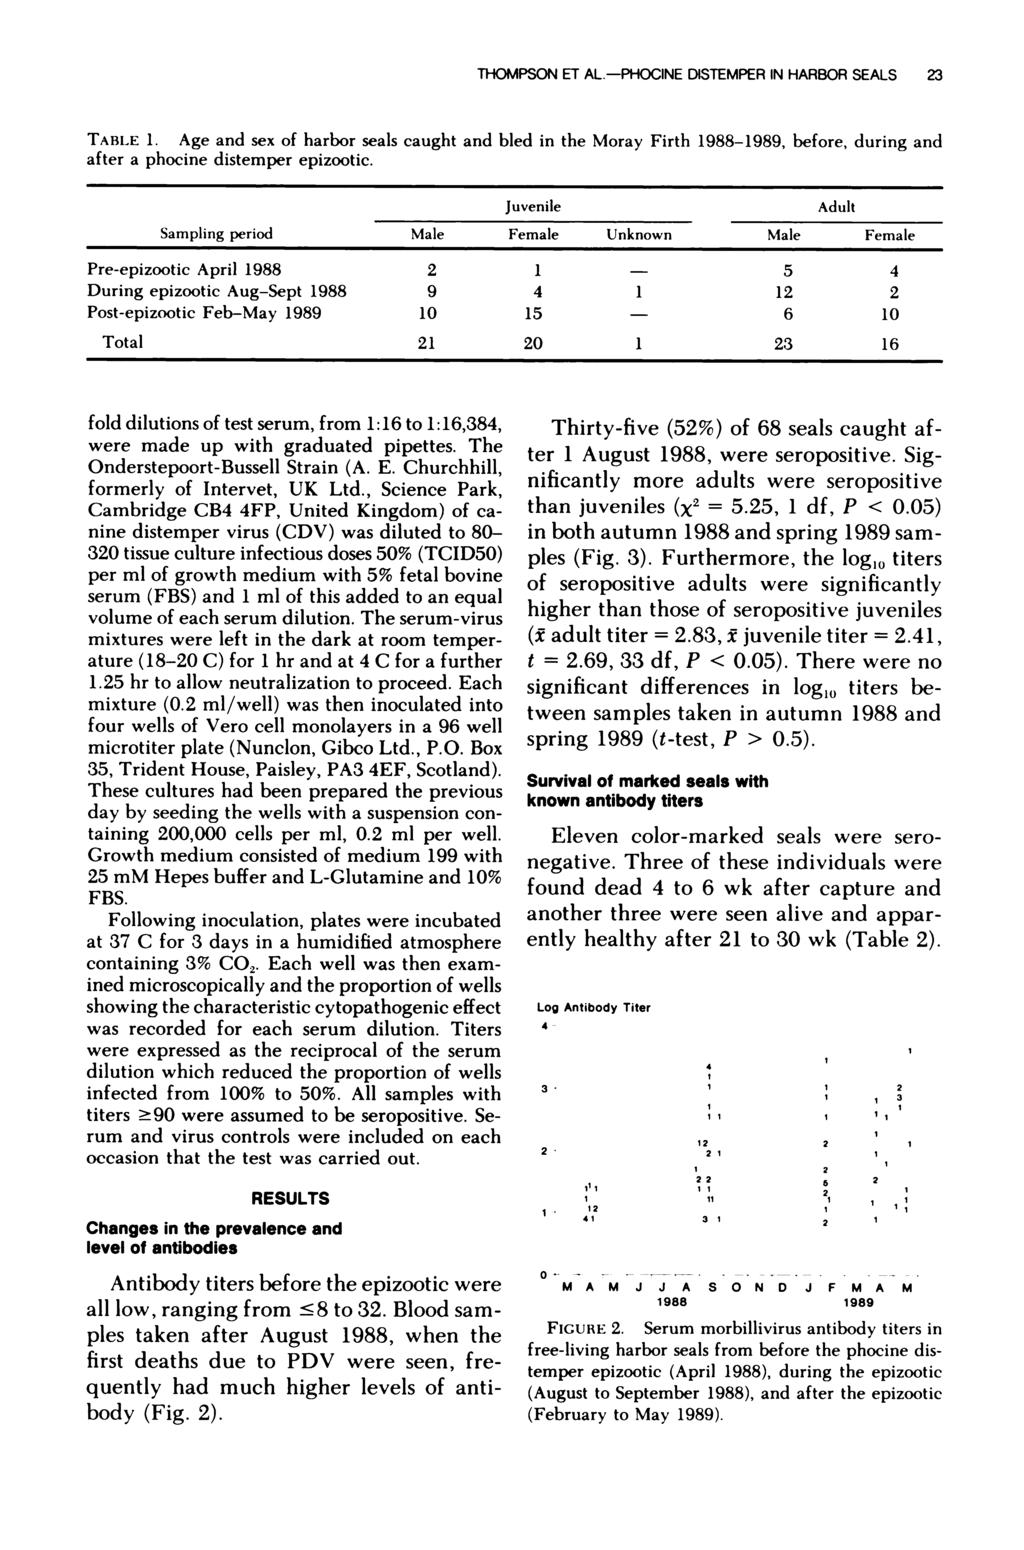 THOMPSON E AL.-PHOCINE DISTEMPER IN HARBOR SEALS 23 TABLE 1. Age and sex of harbor seals caught and bled in the Moray Firth 1988-1989, before, during and after a phocine distemper epizootic.